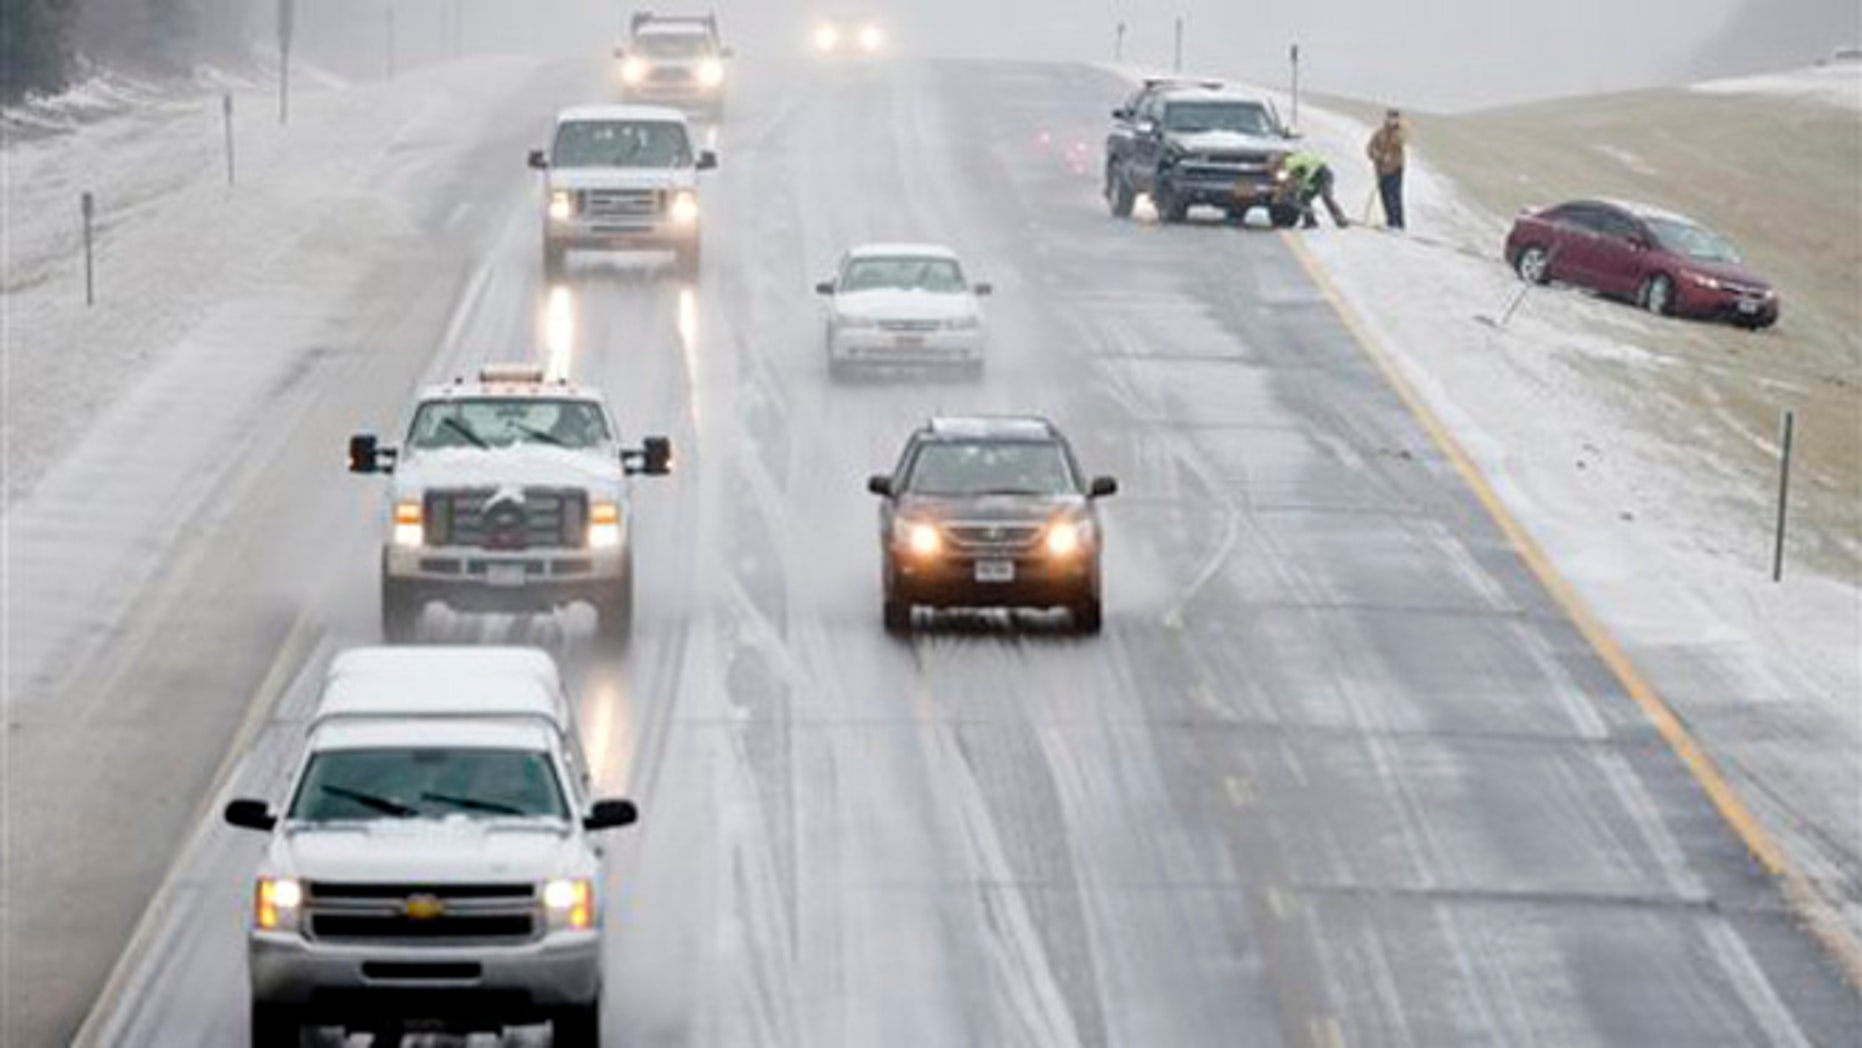 A vehicle is pulled from the median on Interstate 90 on Tuesday, Dec. 29, 2015, in East Greenbush, N.Y. Snow, sleet, freezing rain and gusty winds are creating treacherous driving conditions across upstate New York as eastern parts of the state receive their first severe weather of the winter season. (AP Photo/Mike Groll)